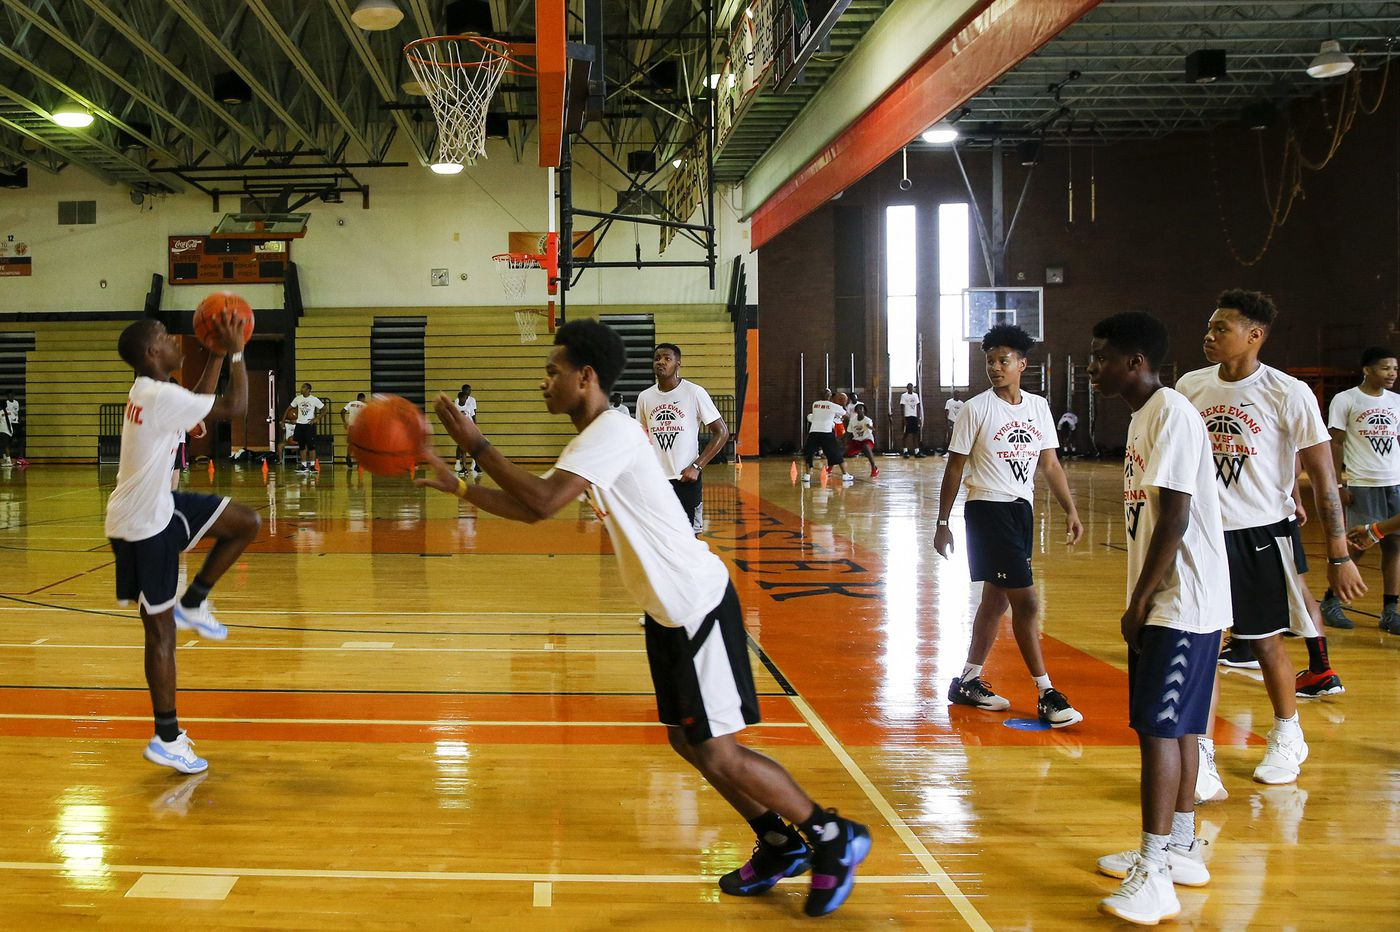 Tyreke Evans to host free basketball camp in Chester